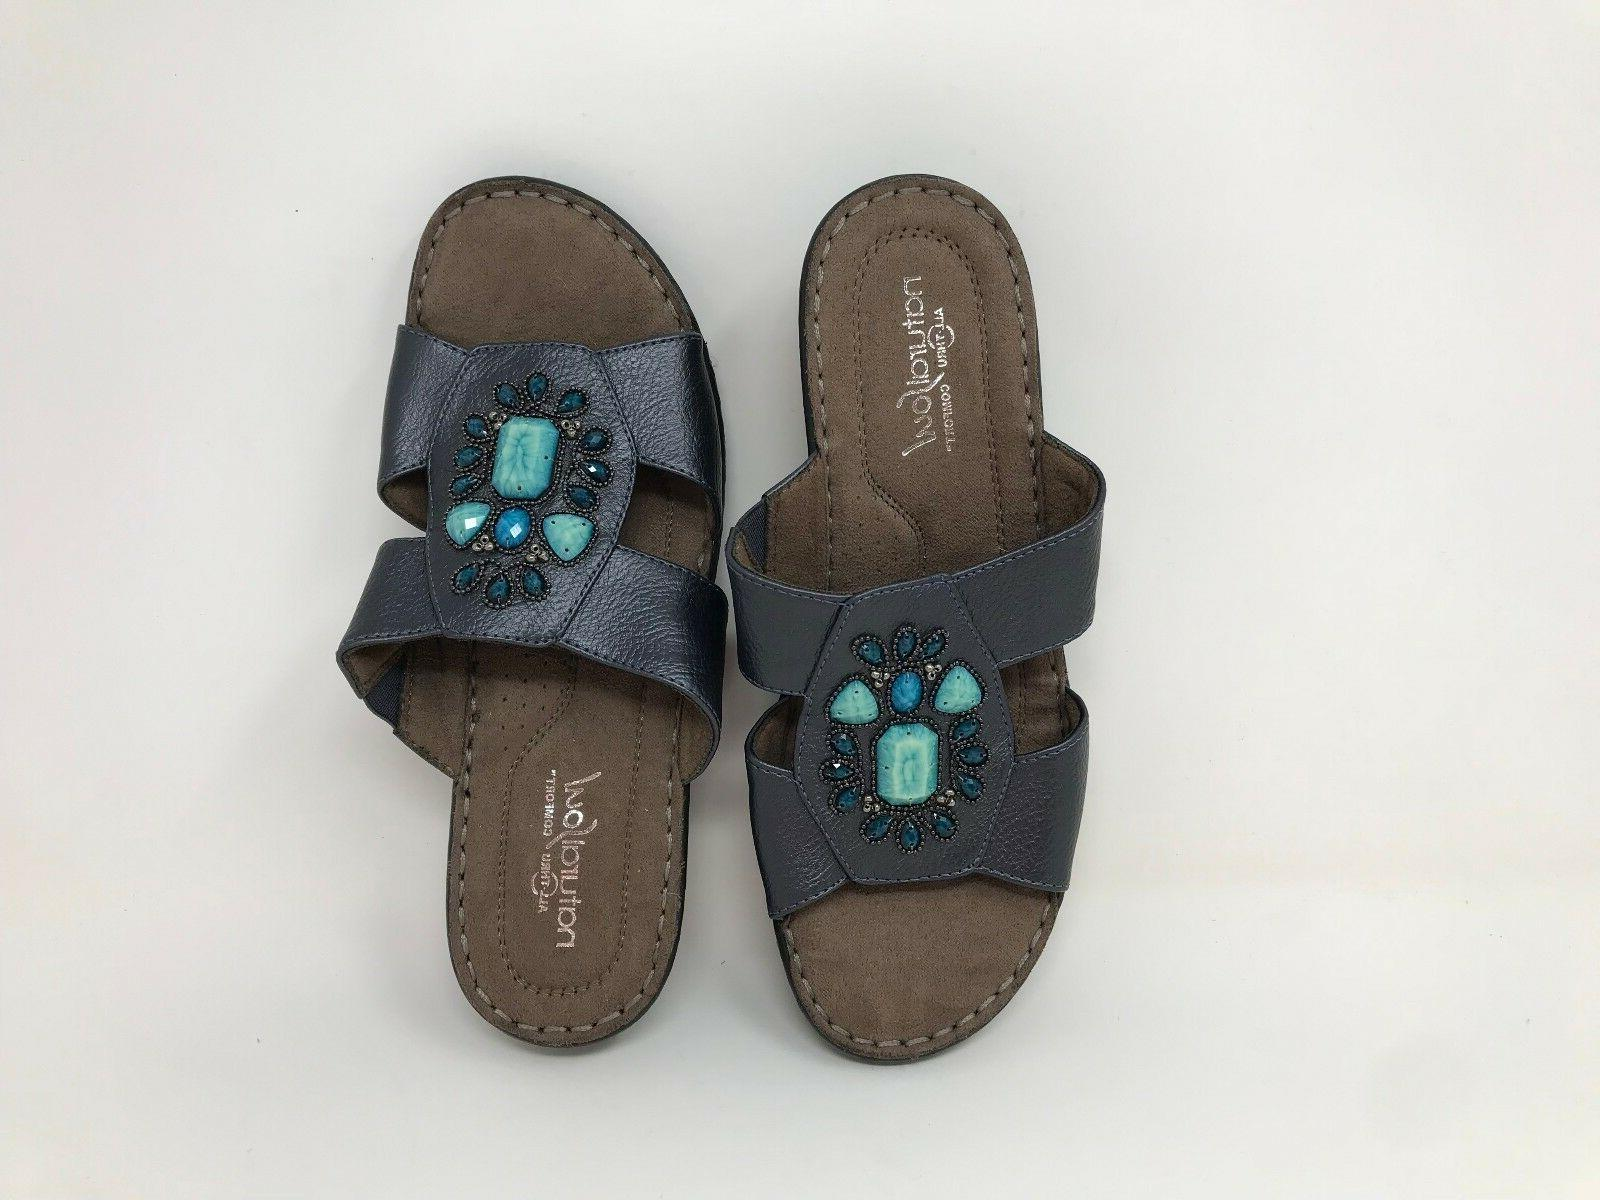 New! Women's Natural Soul by Naturalizer Sandals J15